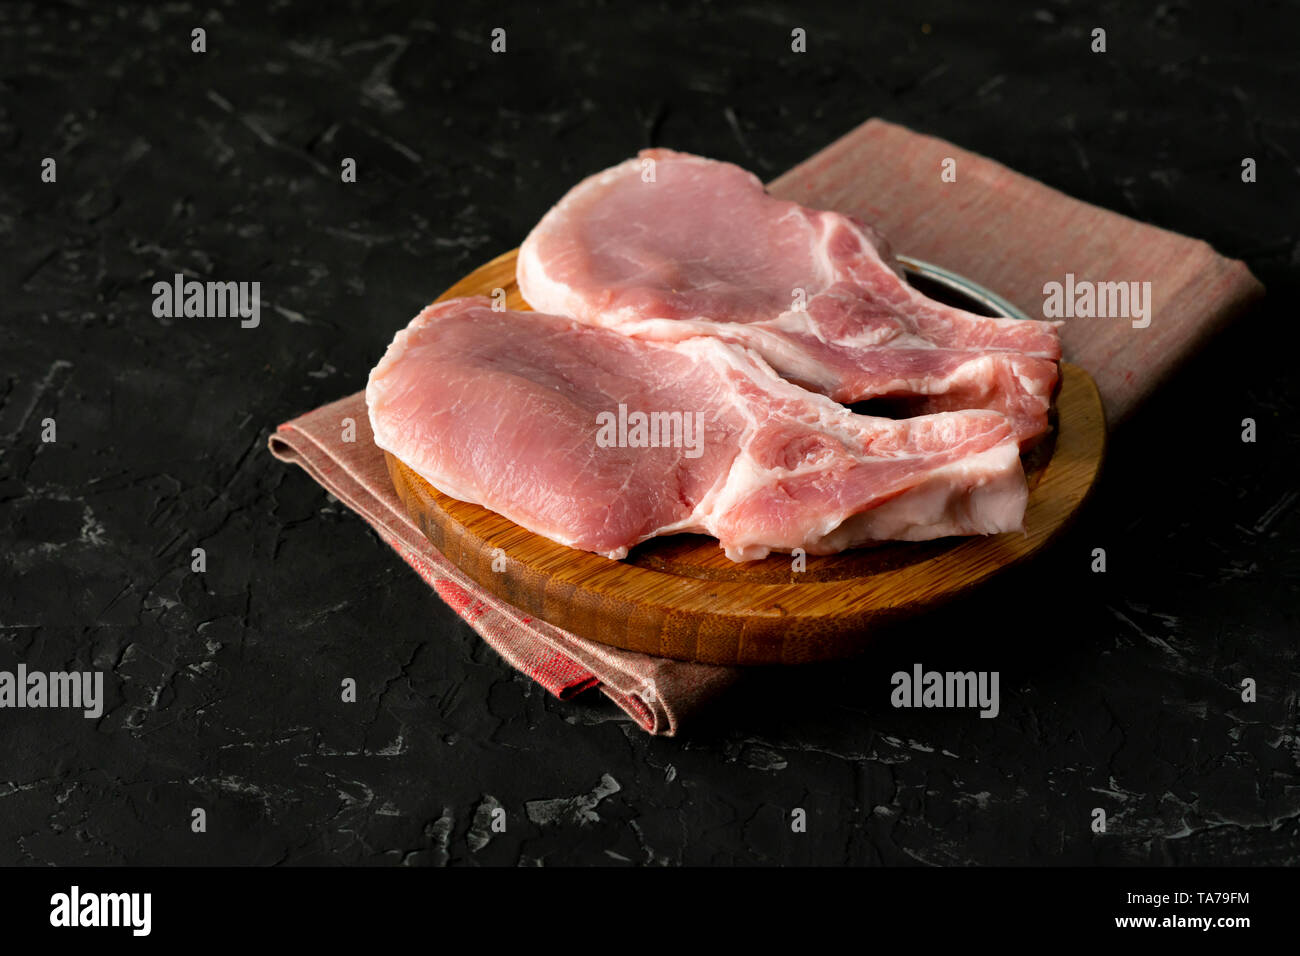 top view of raw meat uncooked slices, cut pork on a wooden board isolated - Stock Image